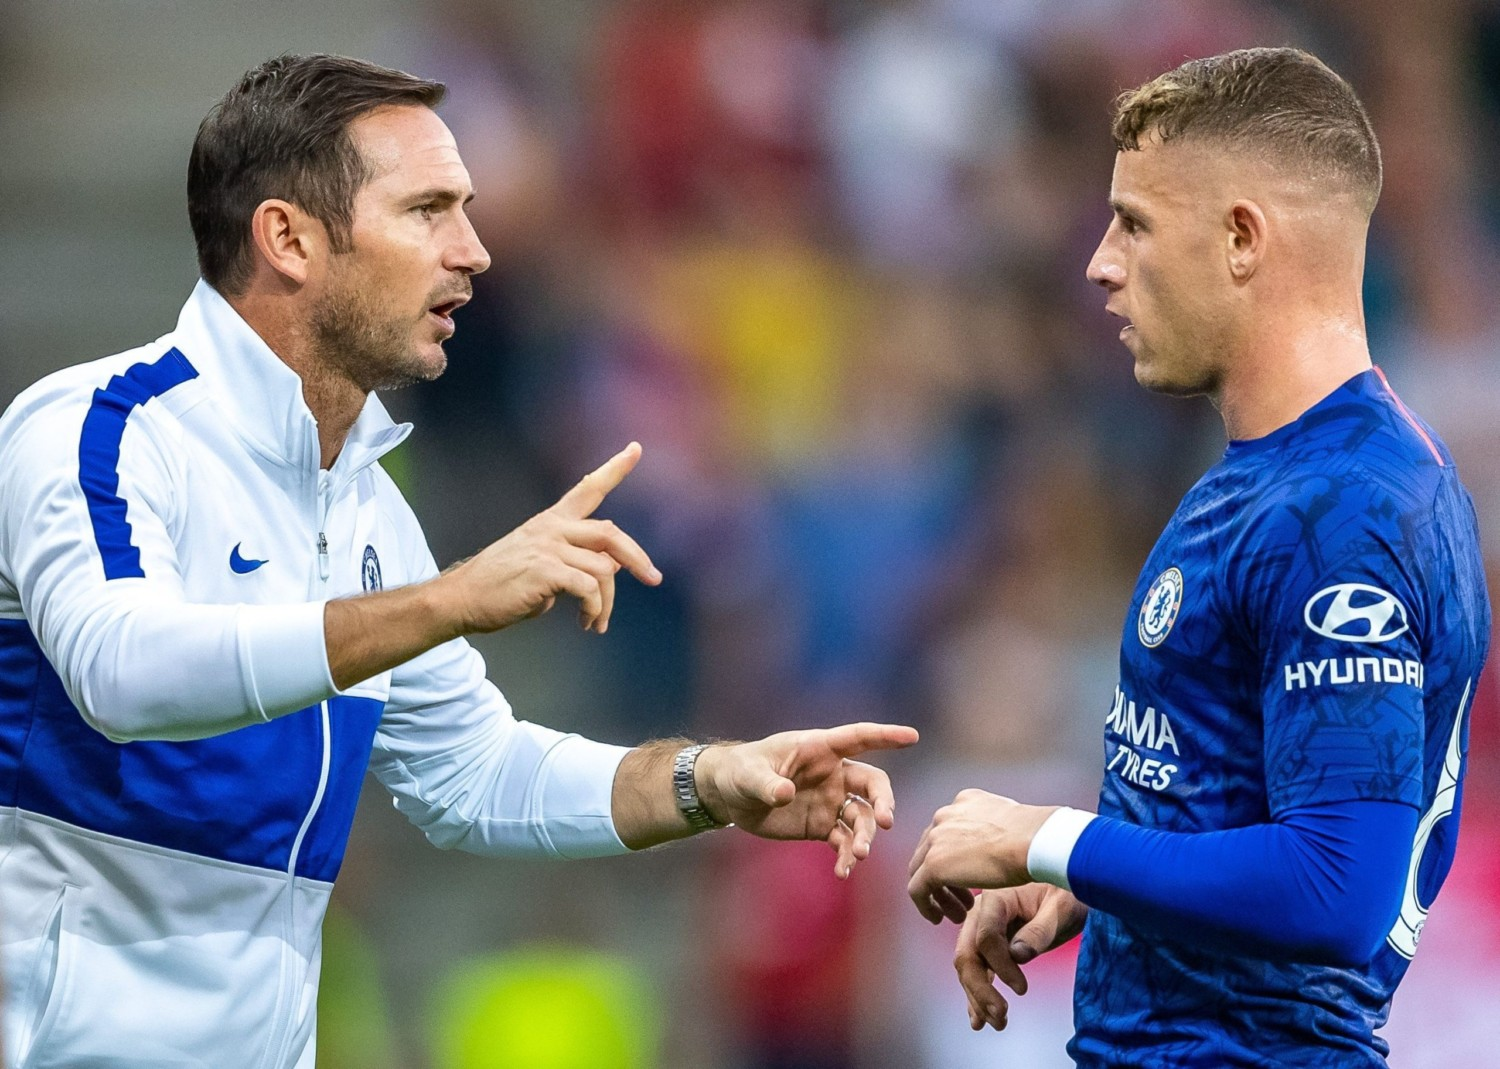 Chelsea boss Lampard calls out Barkley for 'lack of professionalism'